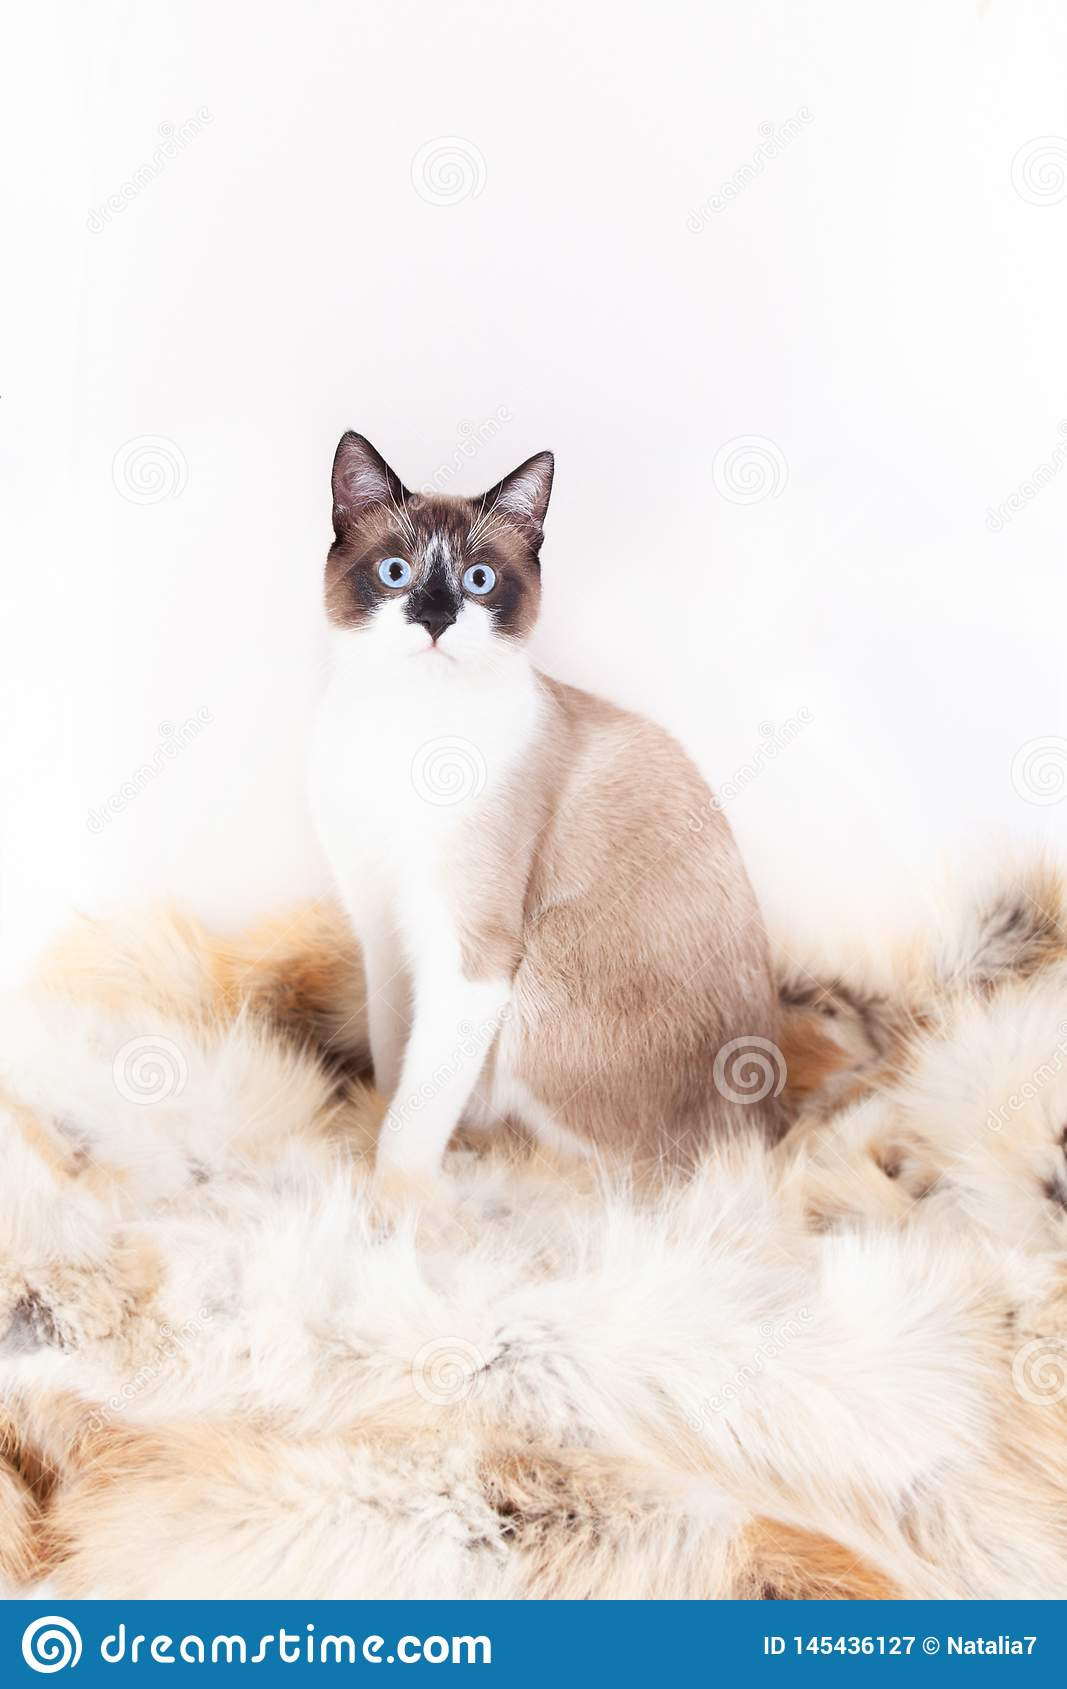 Siamese thai cat sitting on a fur rug for pets, isolated on the white background